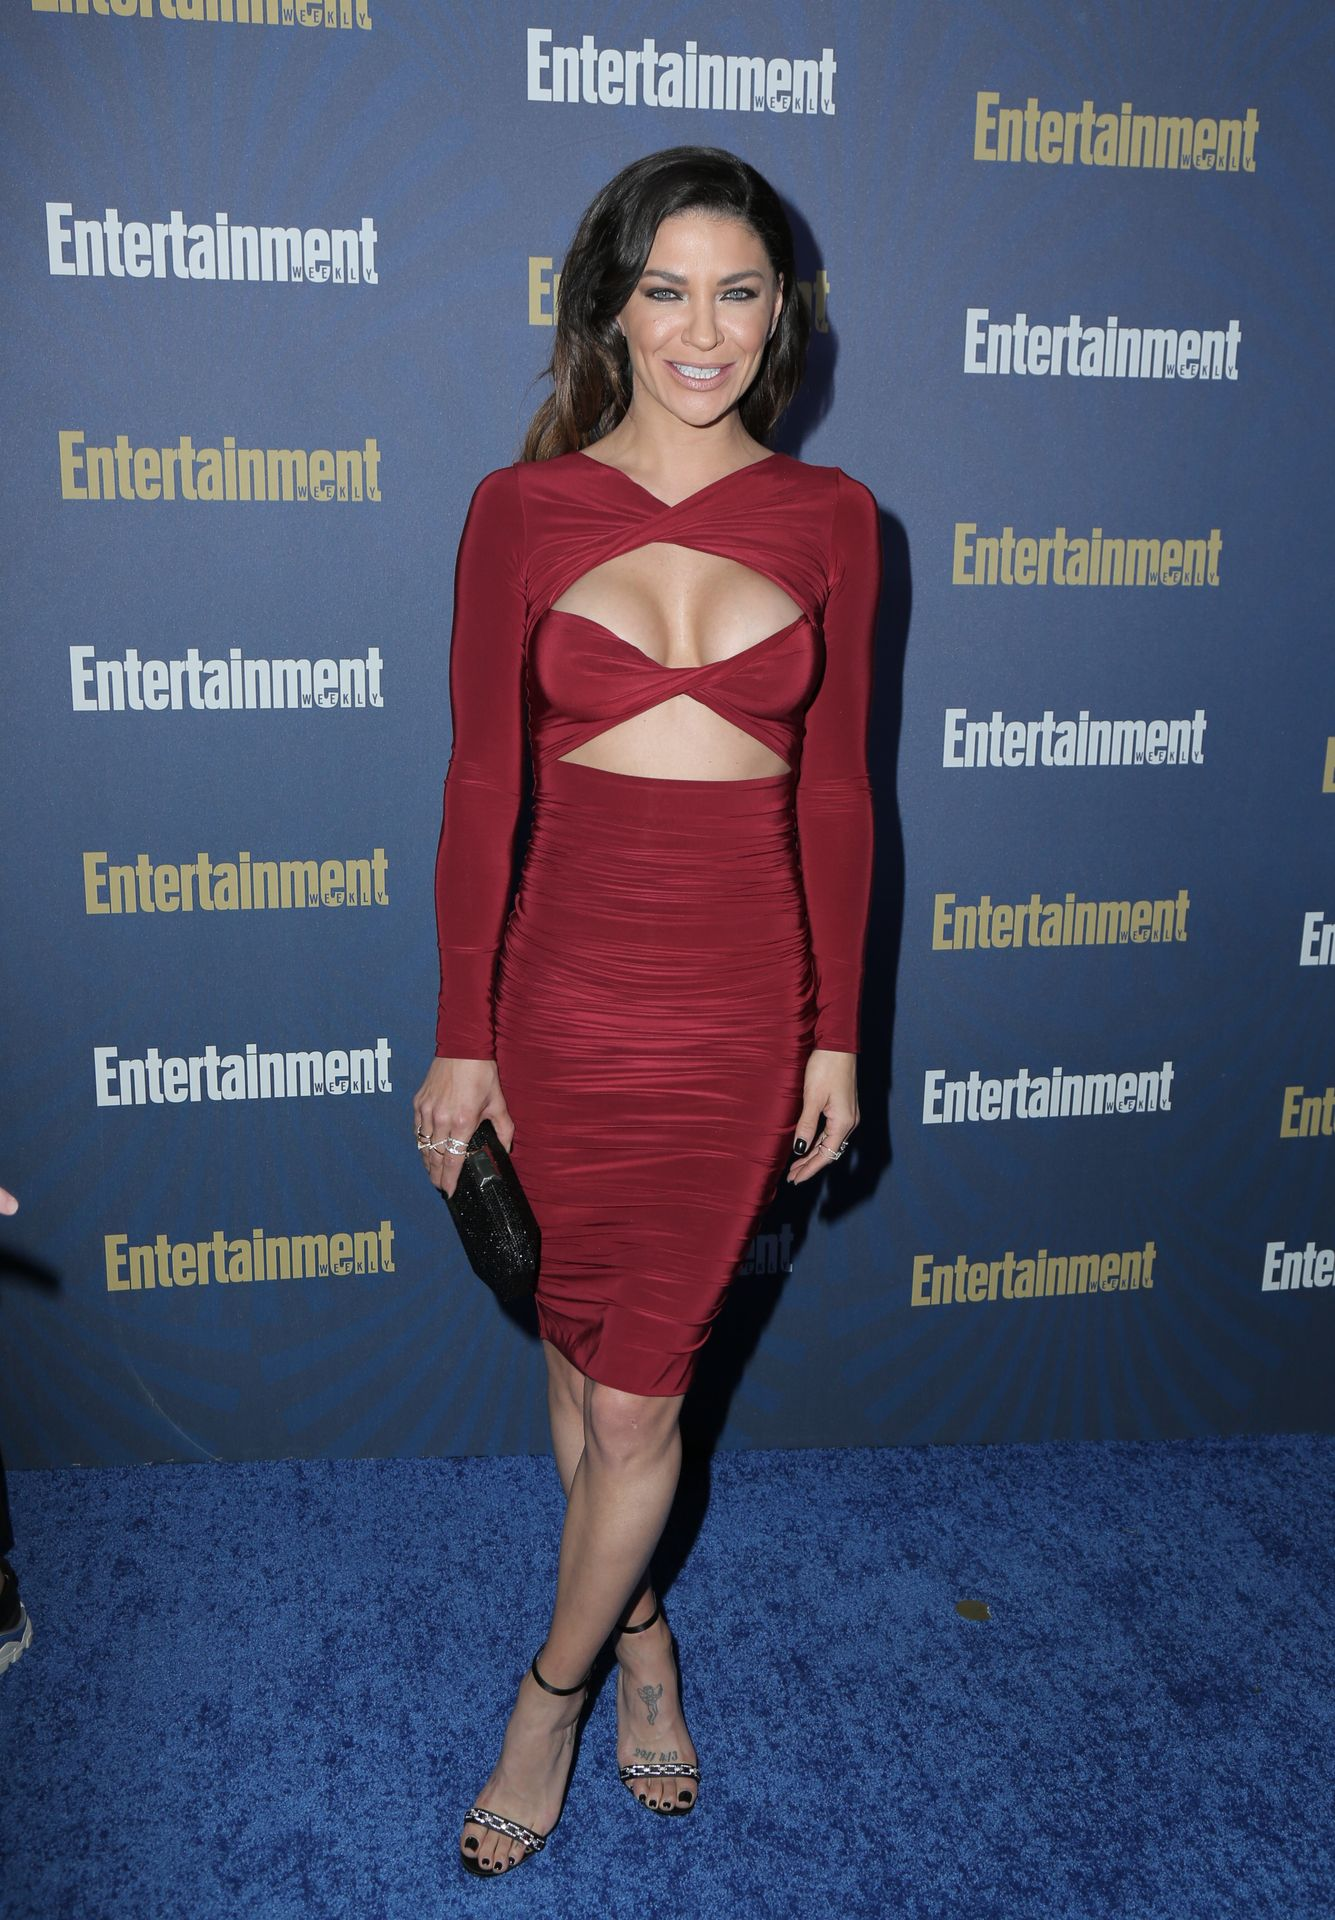 Jessica Szohr Shows Her Cleavage At The Entertainment Weekly Pre Sag Awards Celebration 0009